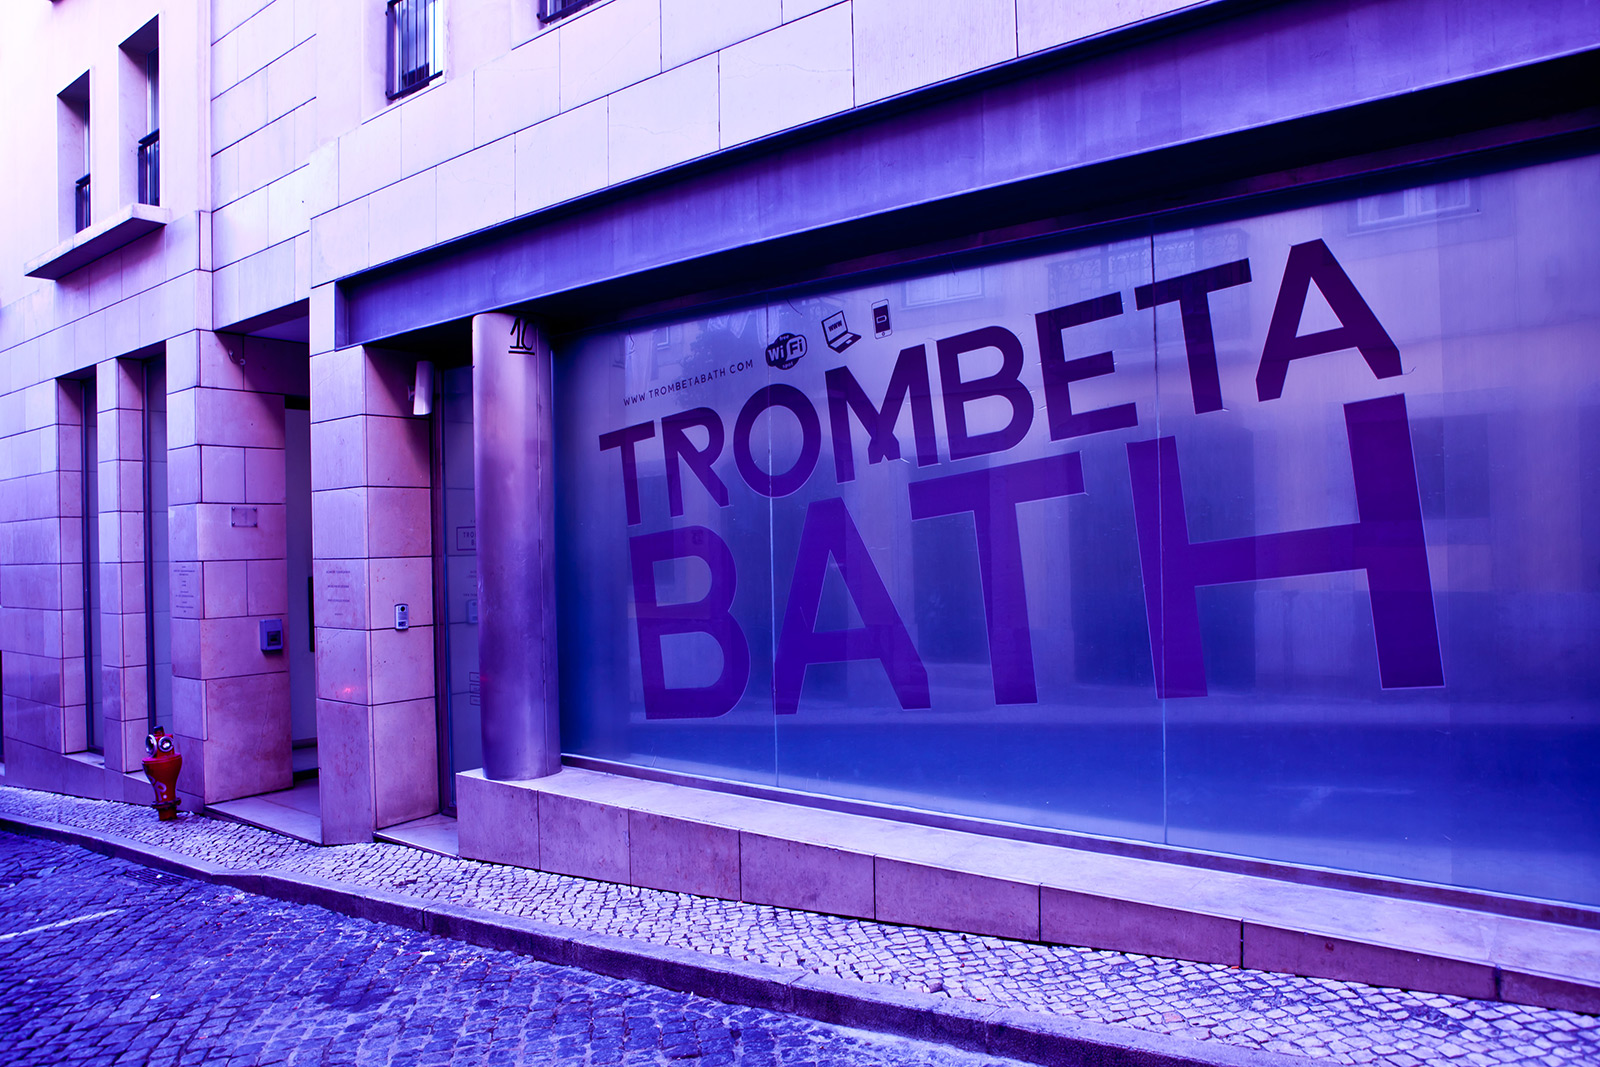 Entrance view for Trombeta Bath, Lisbon, Portugal